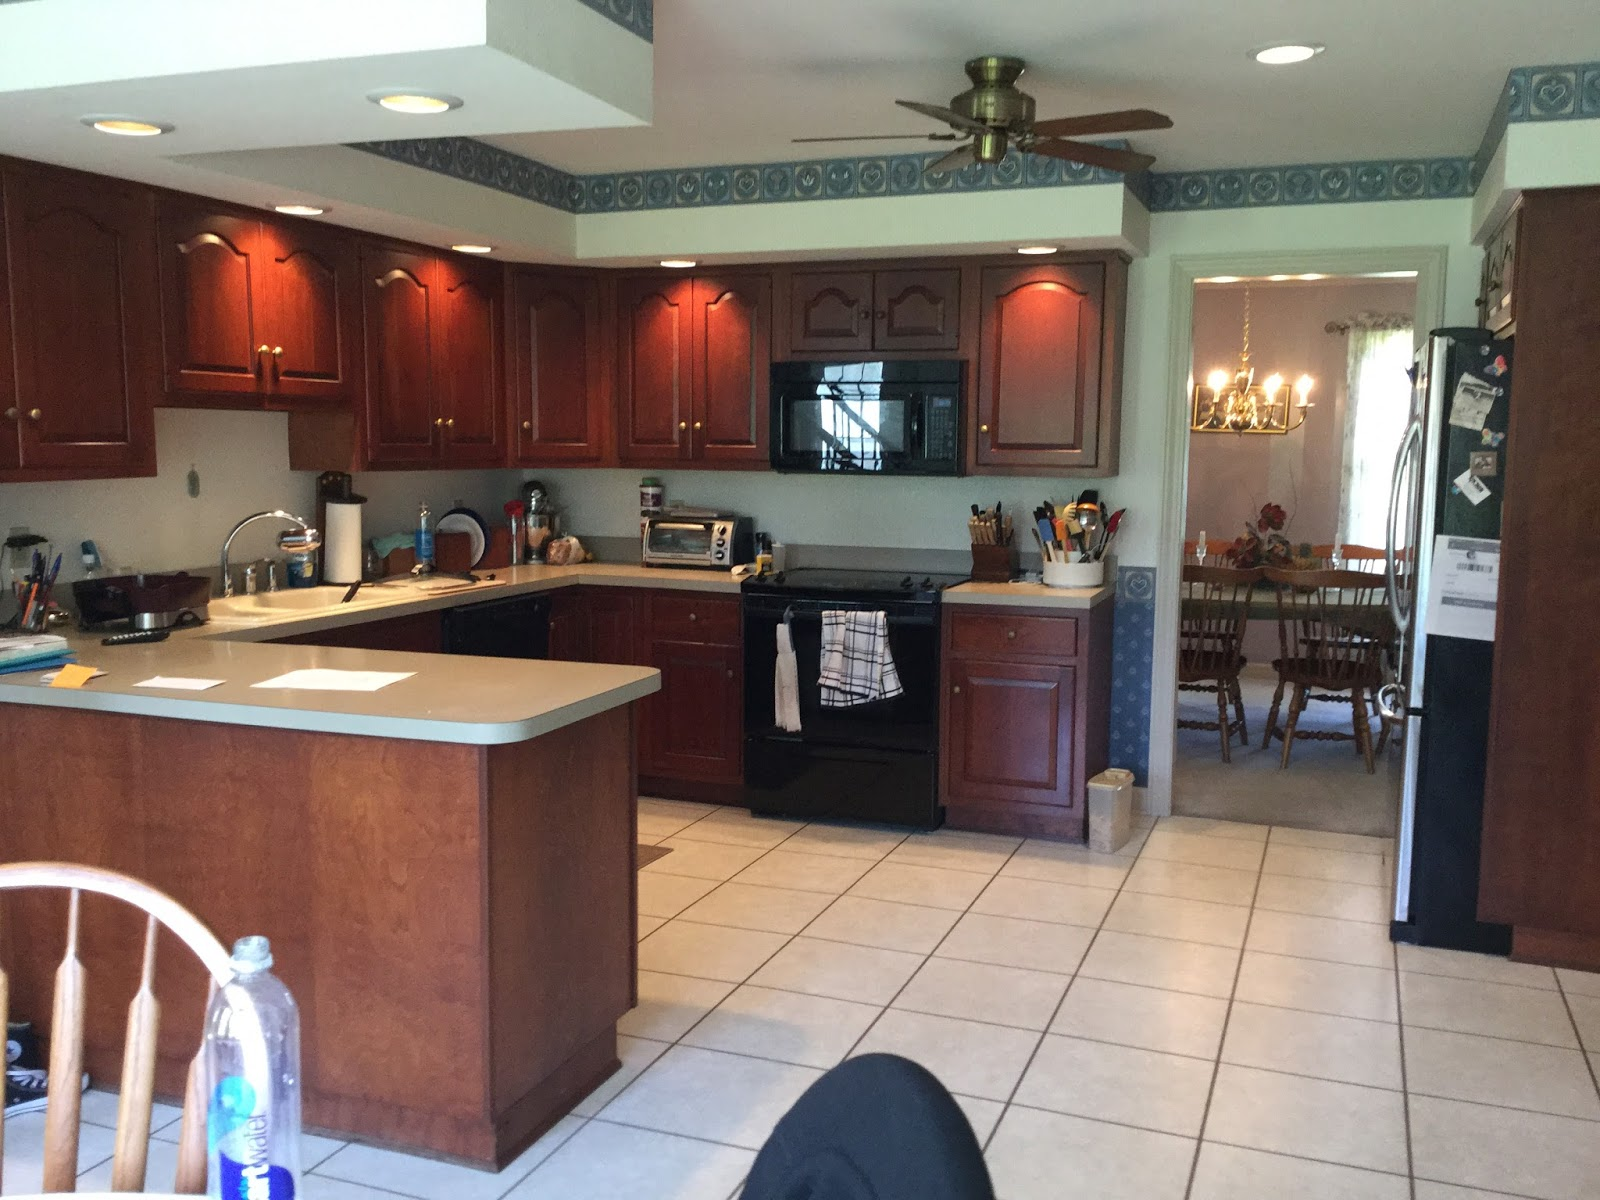 Awesome Hope you enjoyed seeing this Kitchen renovation e to life